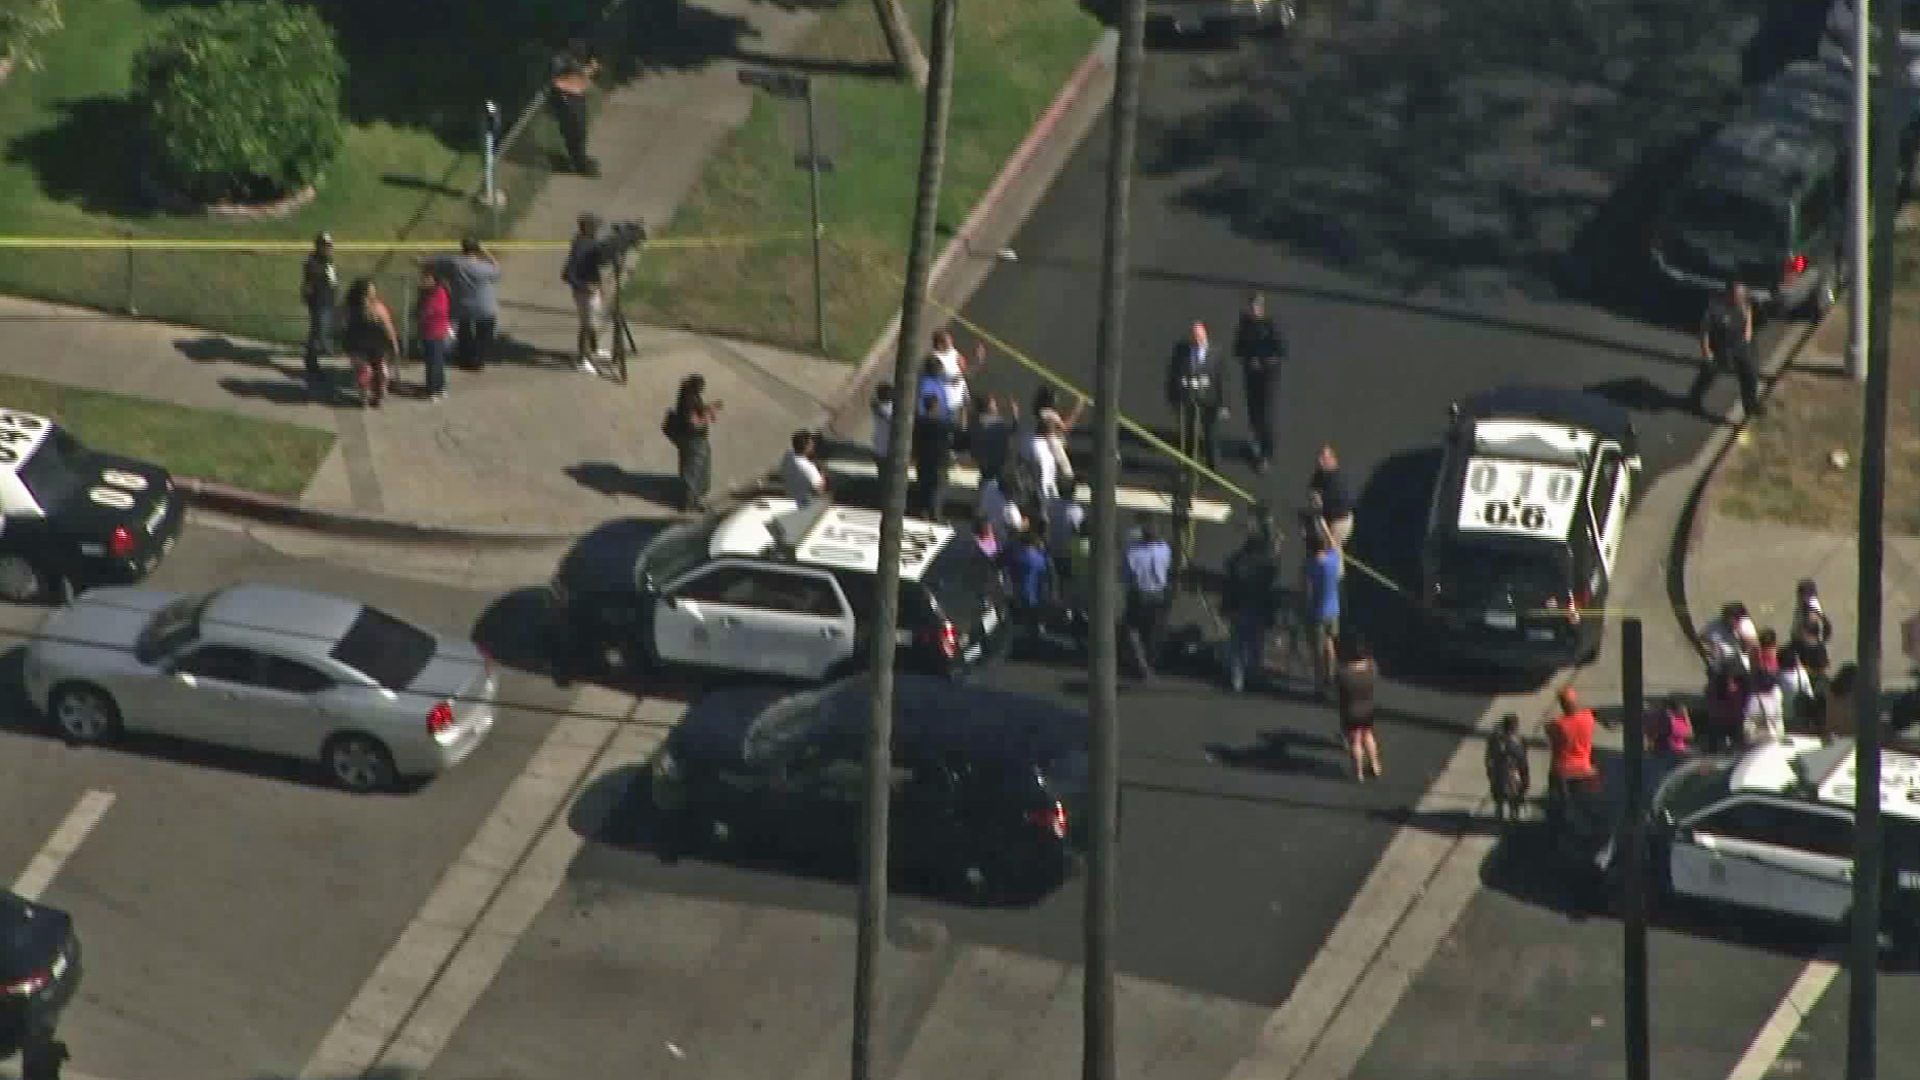 A crowd forms near where a woman was found fatally shot in an East Hollywood alley on July 18, 2019. (Credit: KTLA)